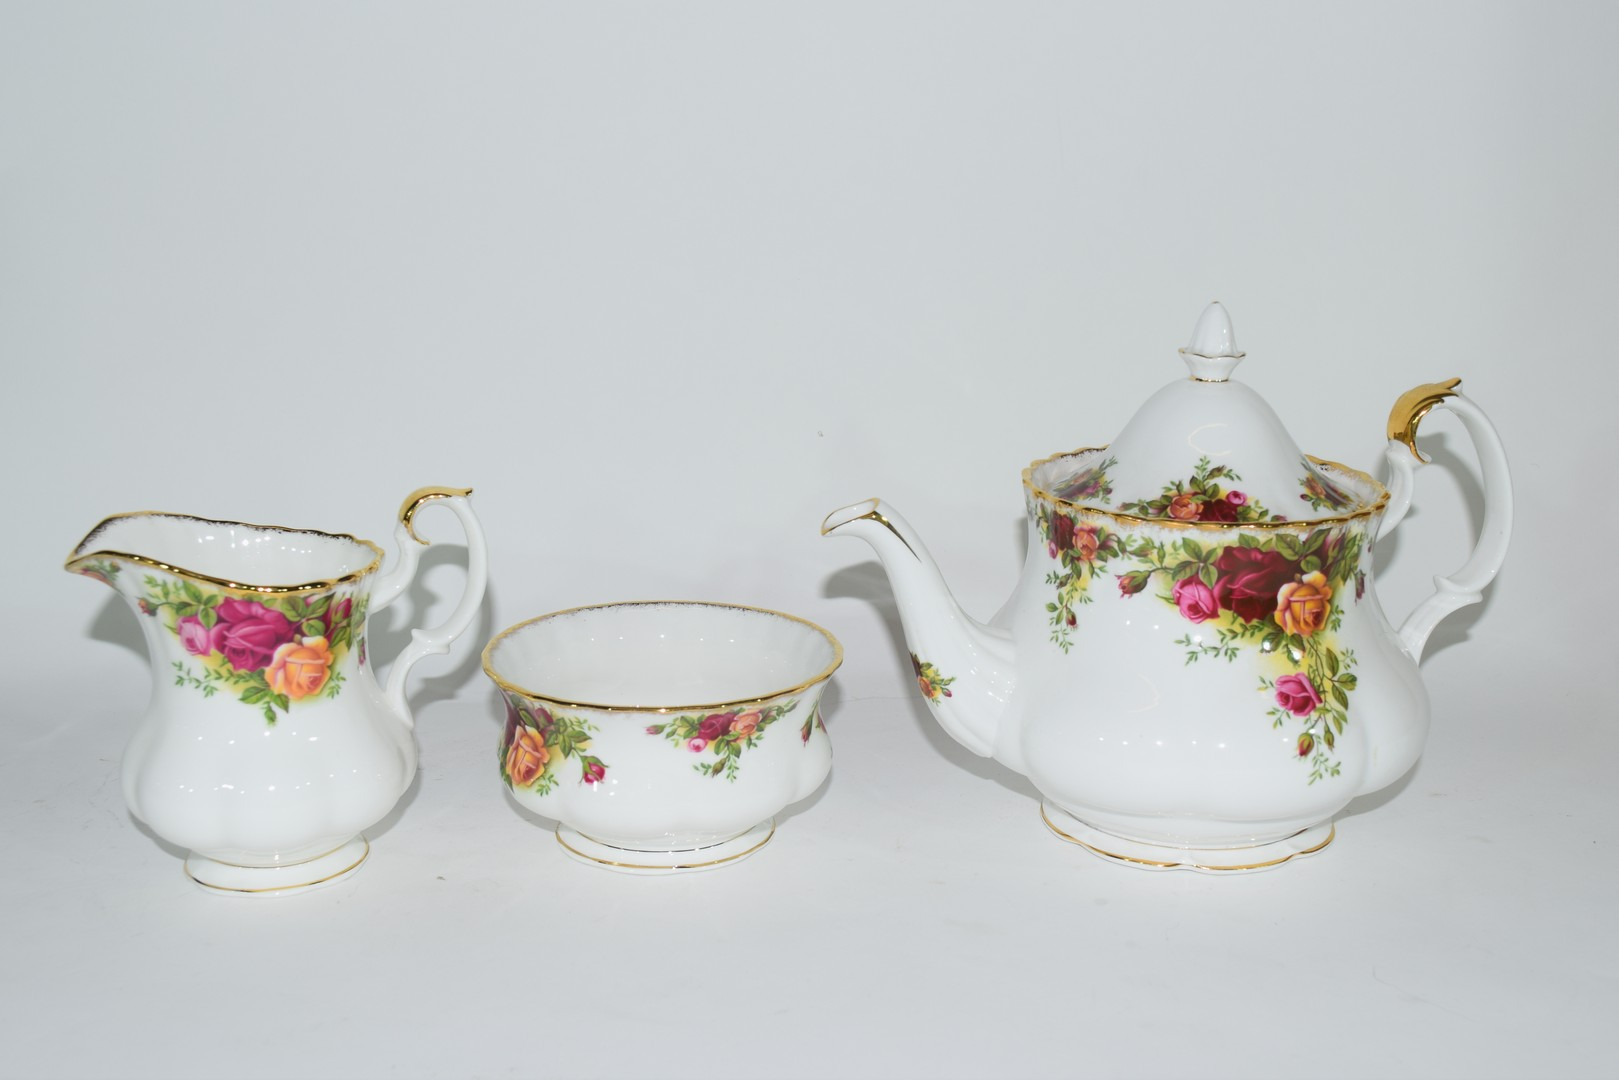 Royal Albert tea set in the Old Country Roses pattern - Image 2 of 4